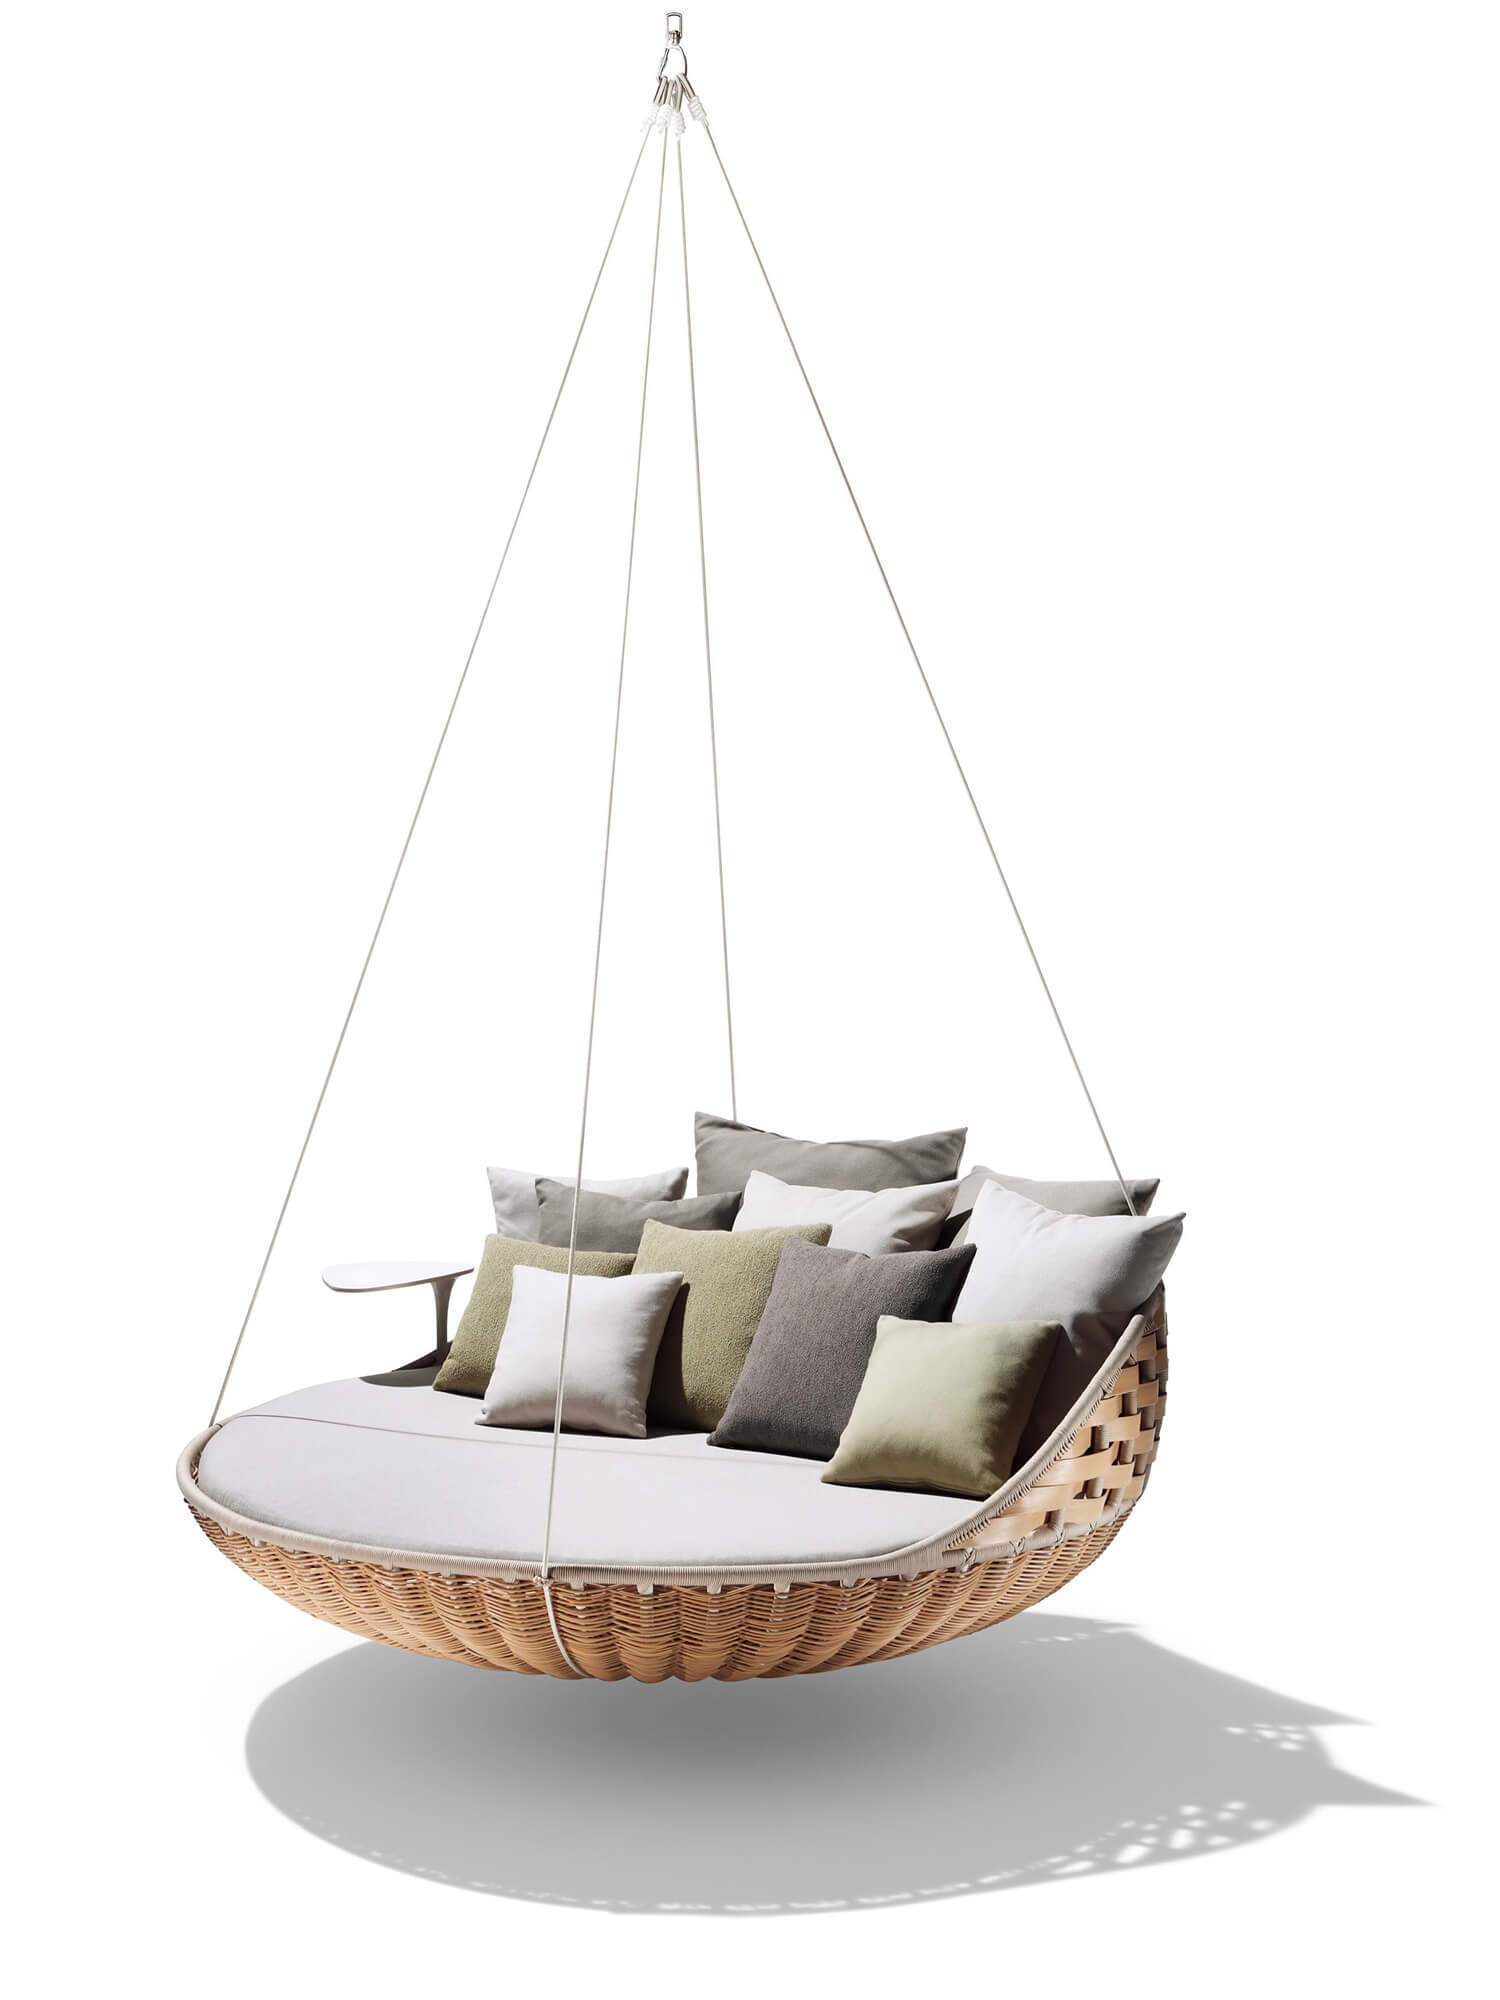 Est Living Get the Look Entertaining Outdoors Dedon Swingrest Chair